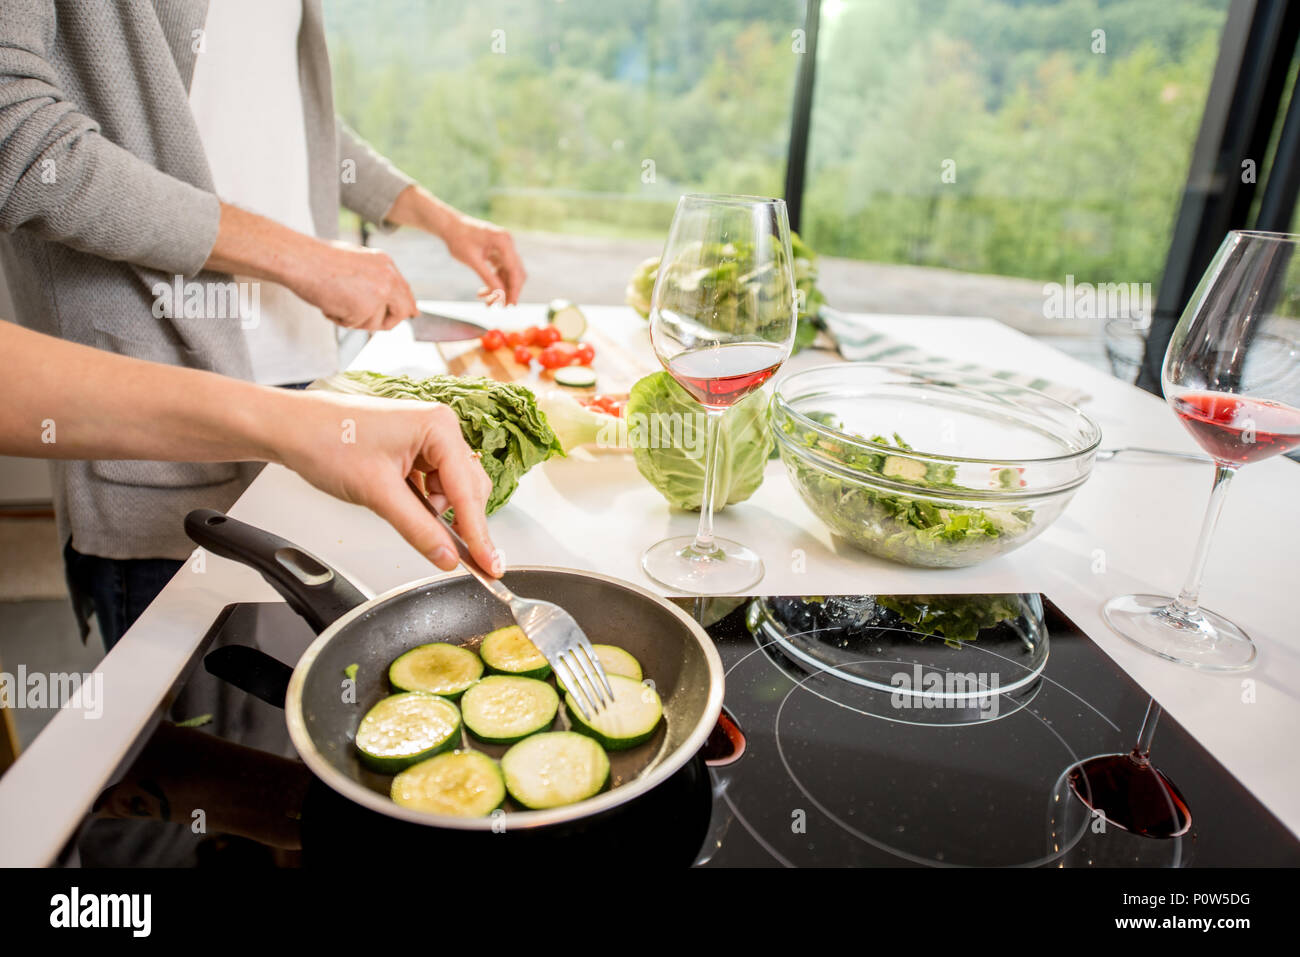 Cooking some veggie food - Stock Image